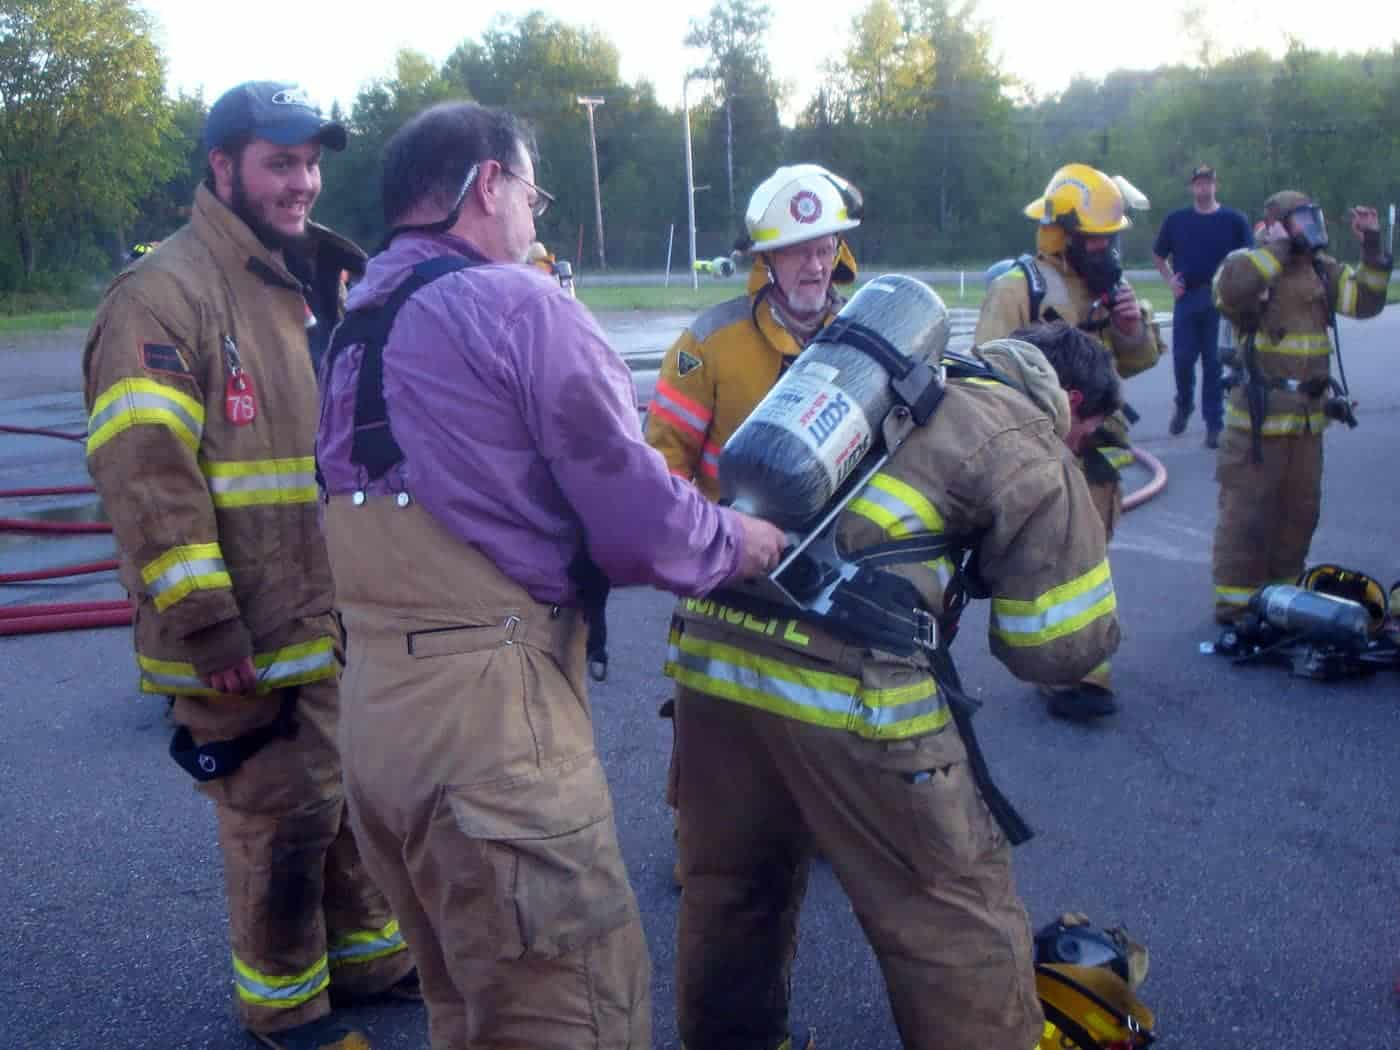 3 – Fire Department gearing up for propane training